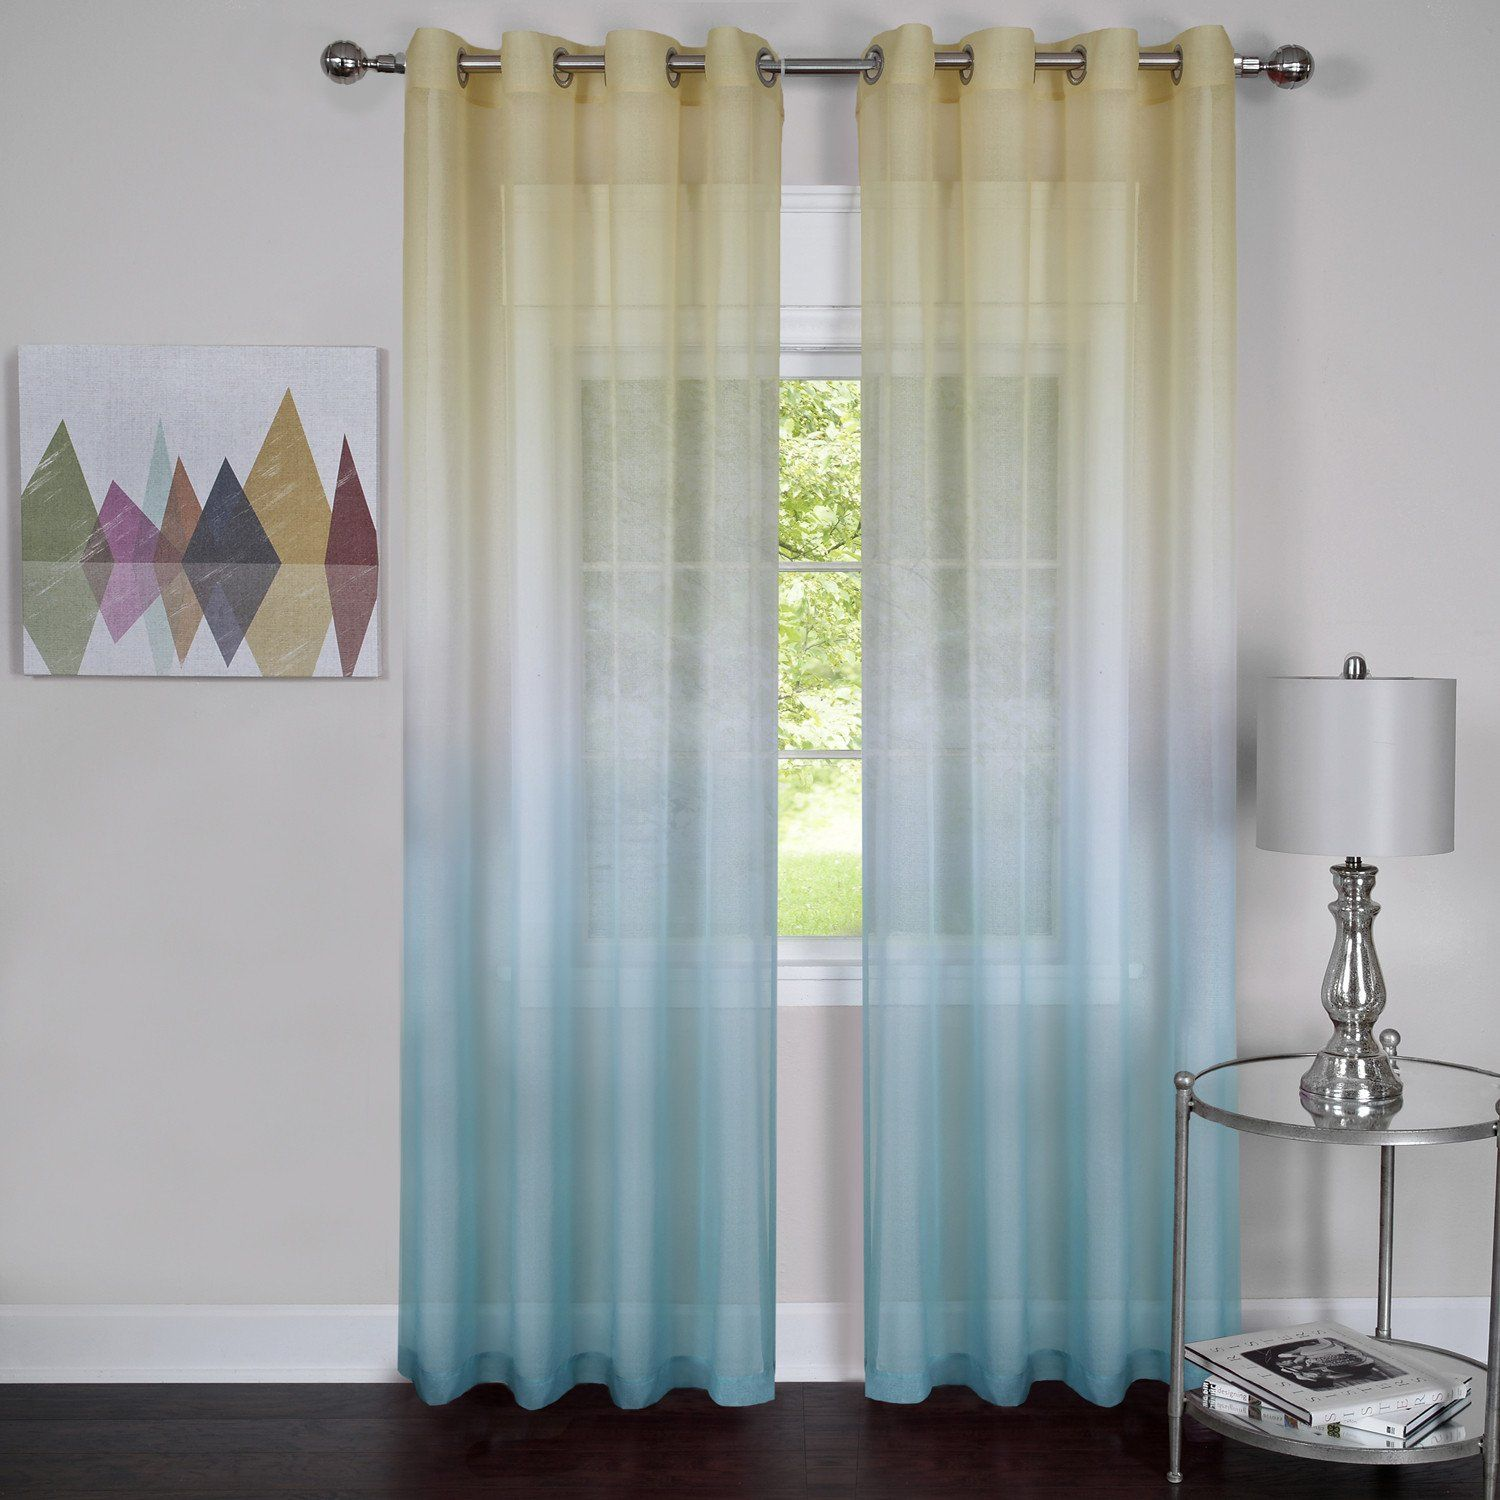 Rainbow Curtains From Marburn Panel Curtains Grommet Curtains